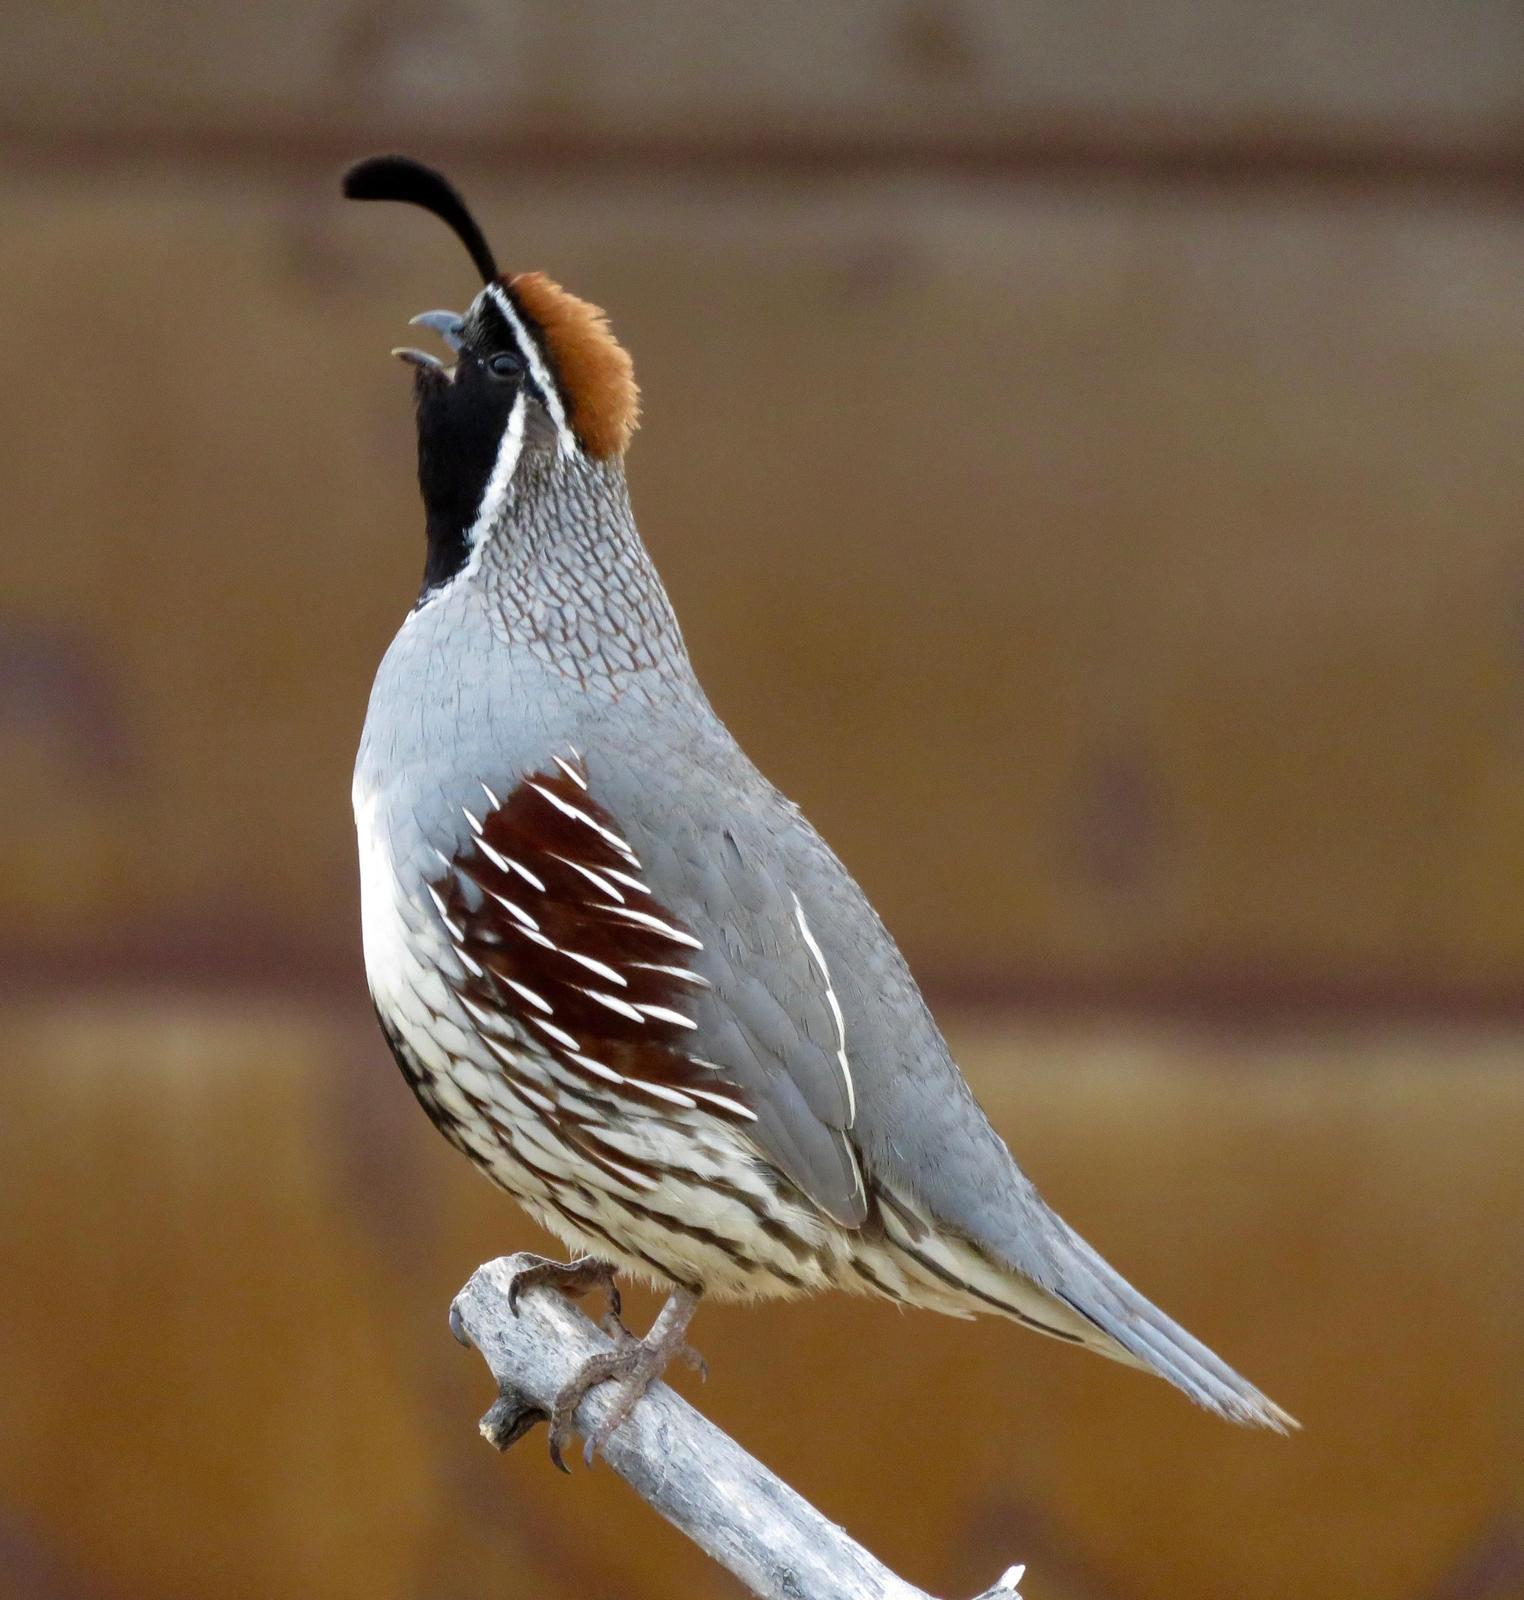 Gambel's Quail Photo by Don Glasco